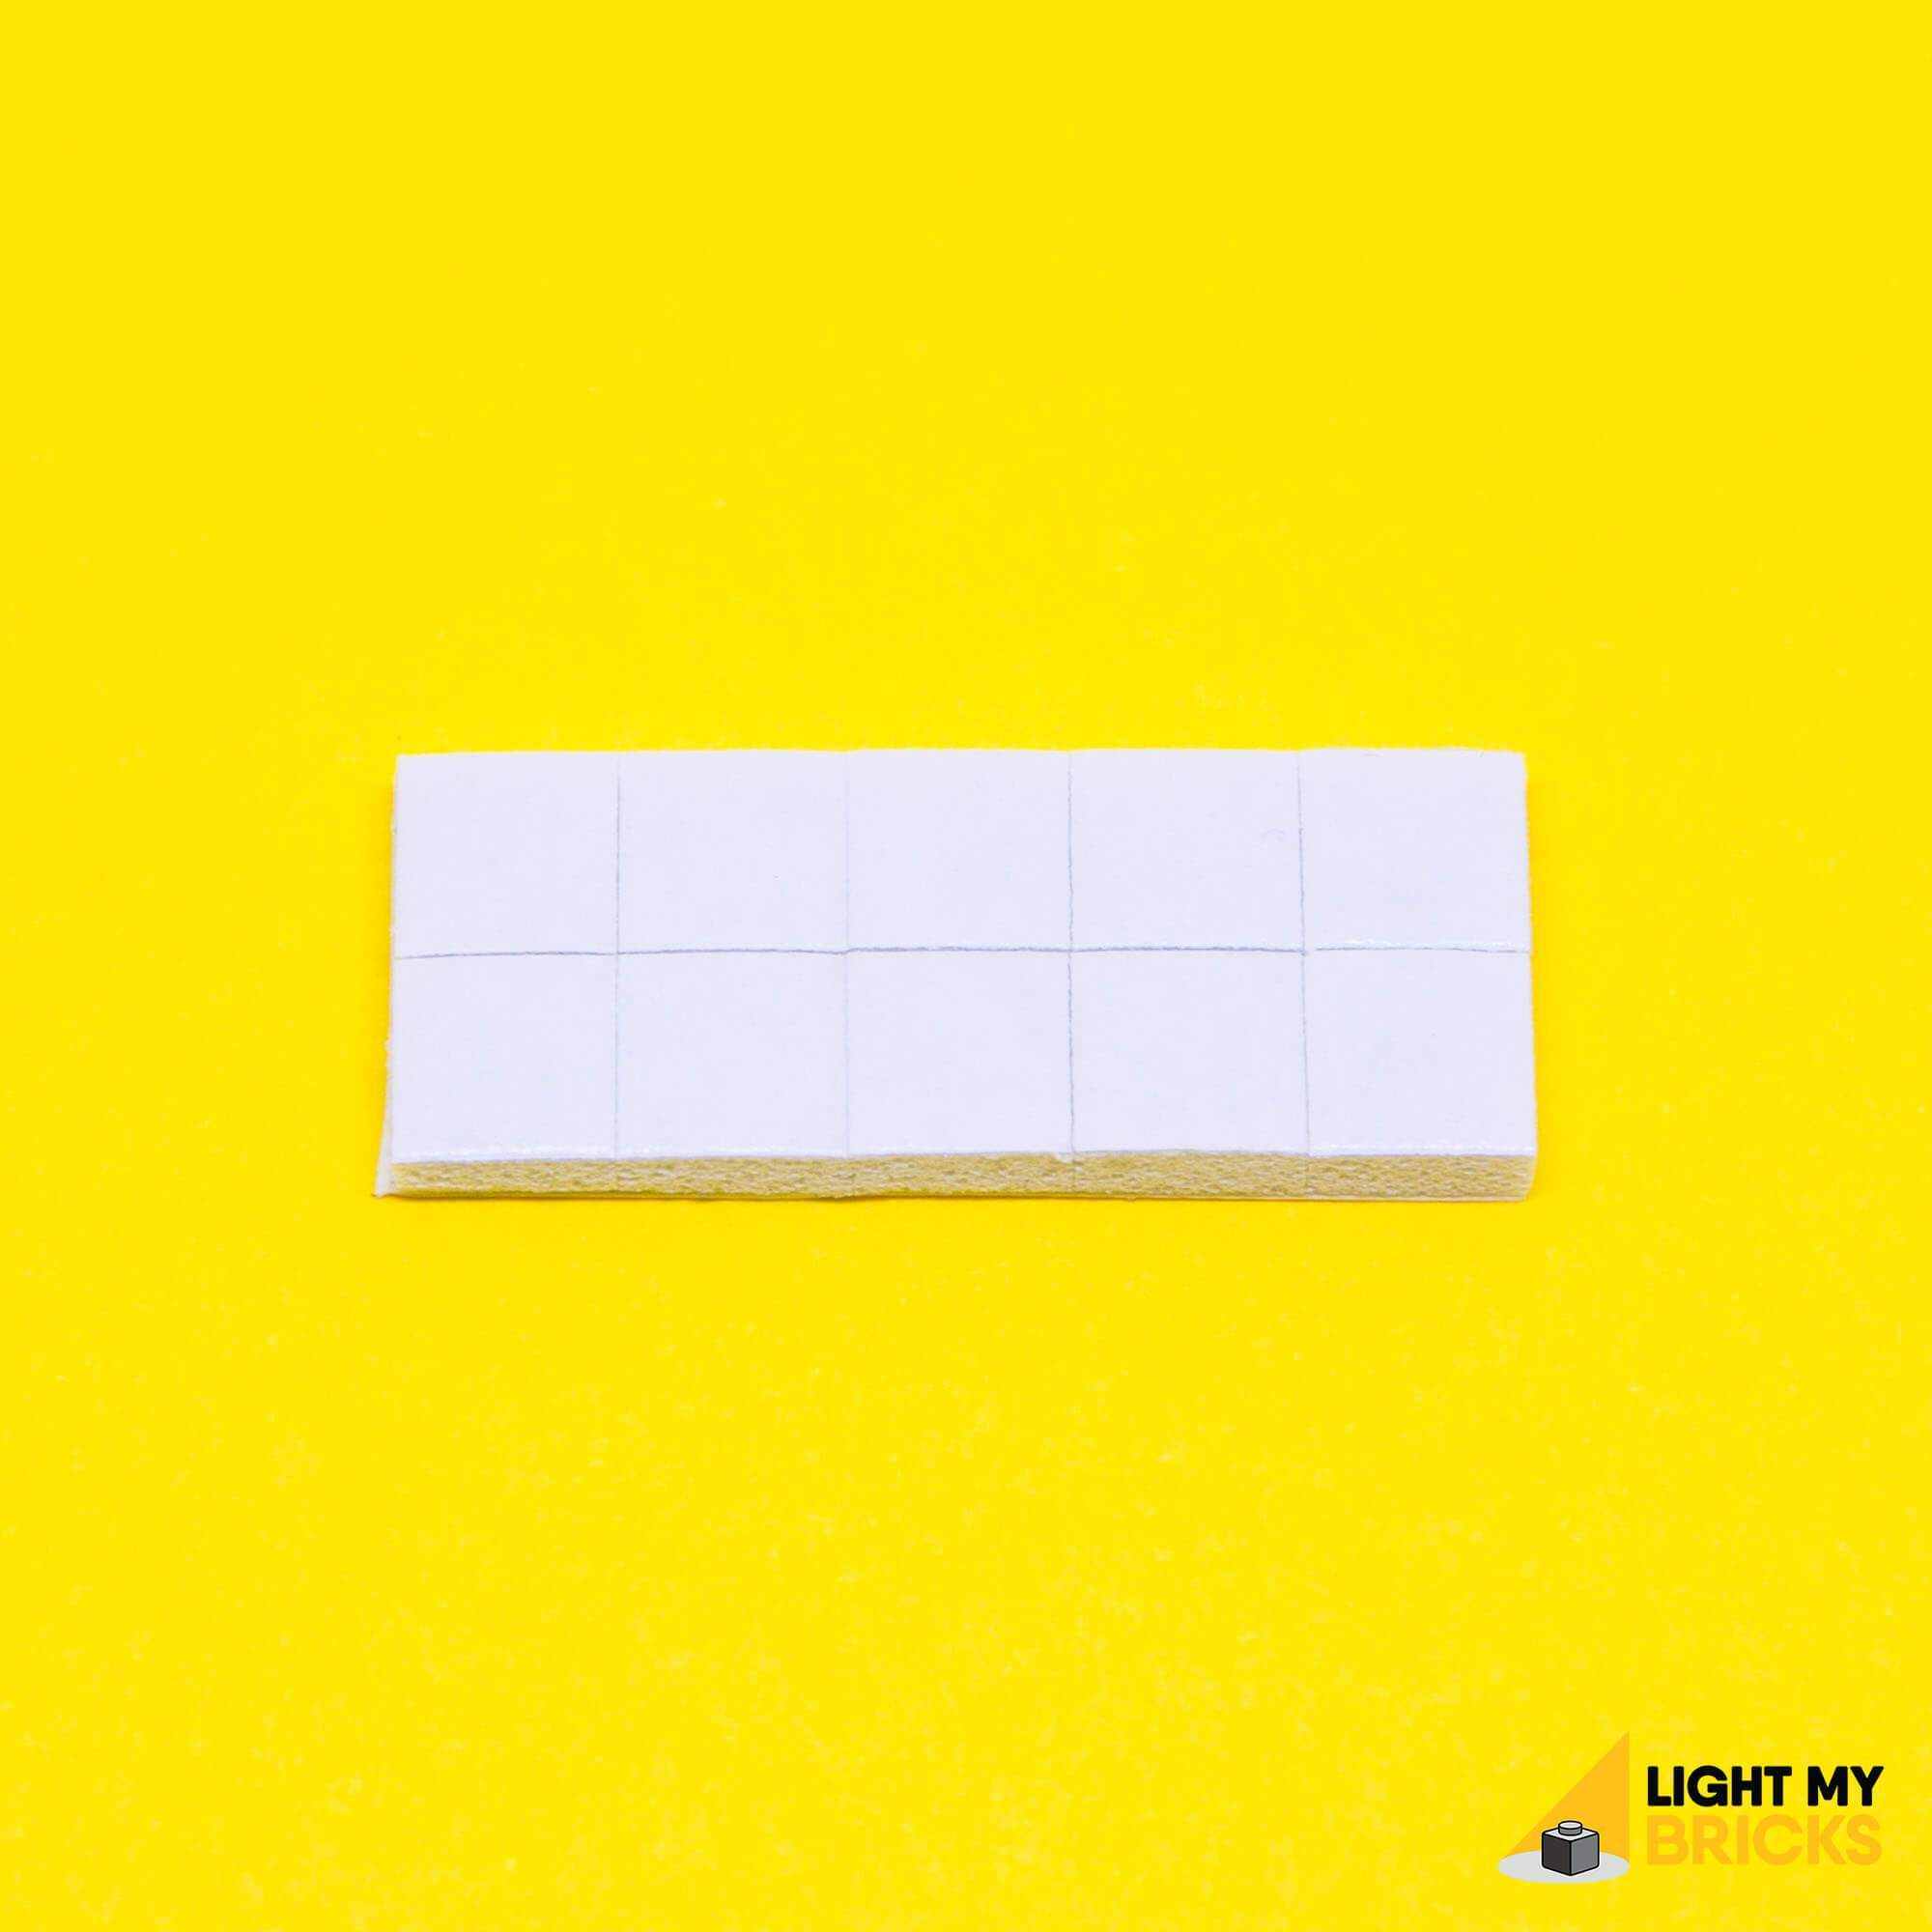 Light My Bricks LEGO Lighting Component - Adhesive Squares